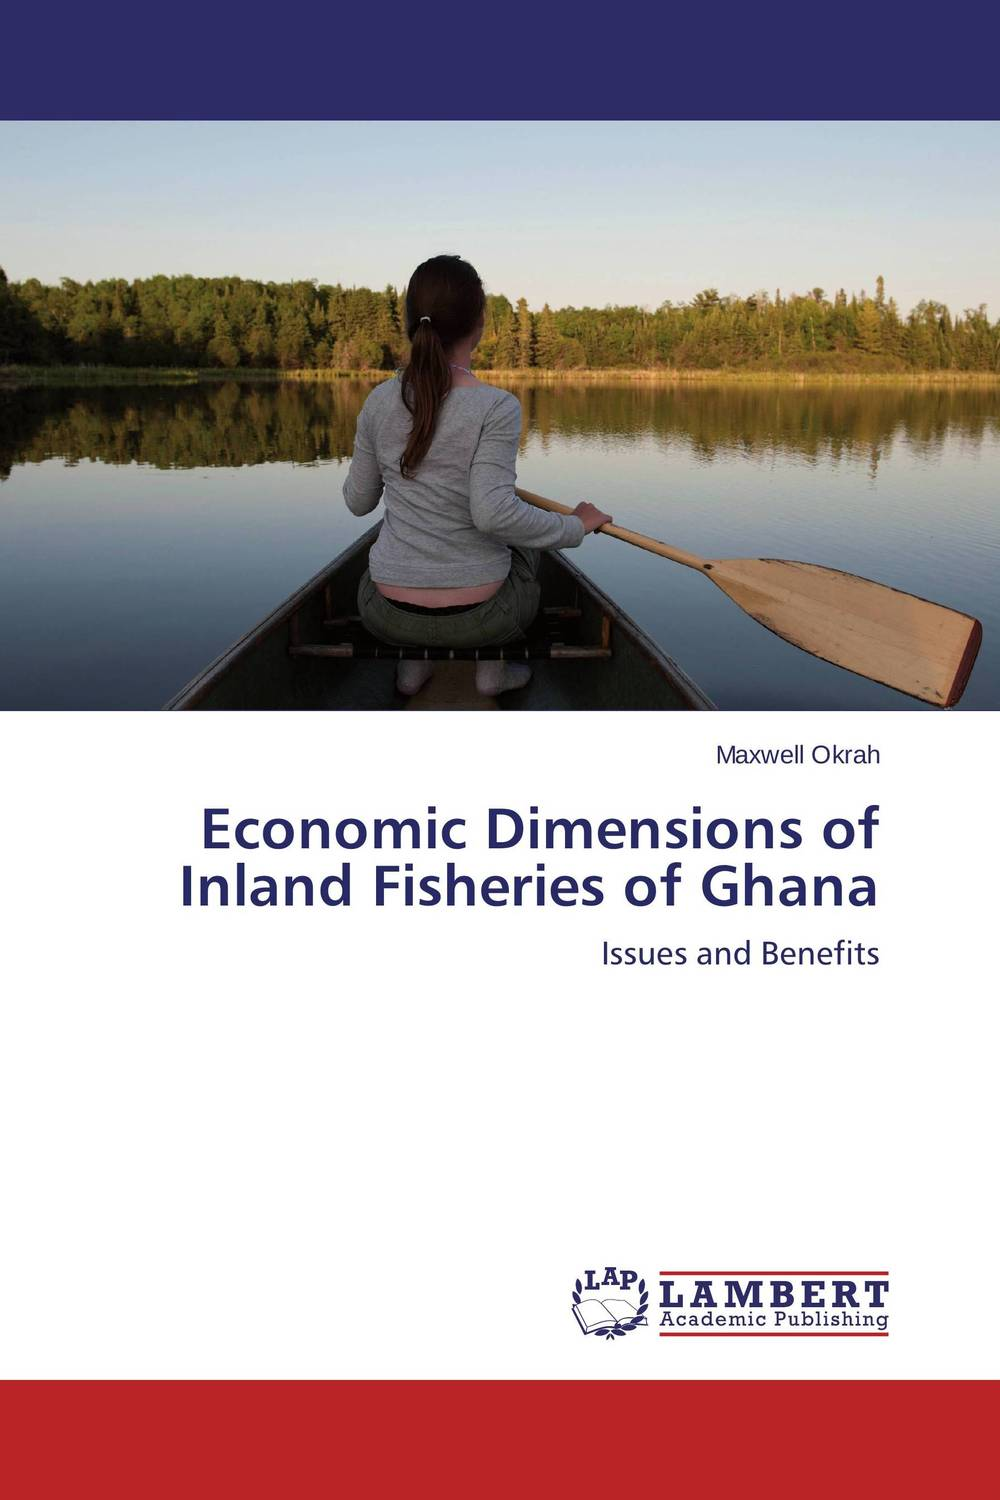 Economic Dimensions of Inland Fisheries of Ghana planning for sustainable development of inland aquaculture in angola